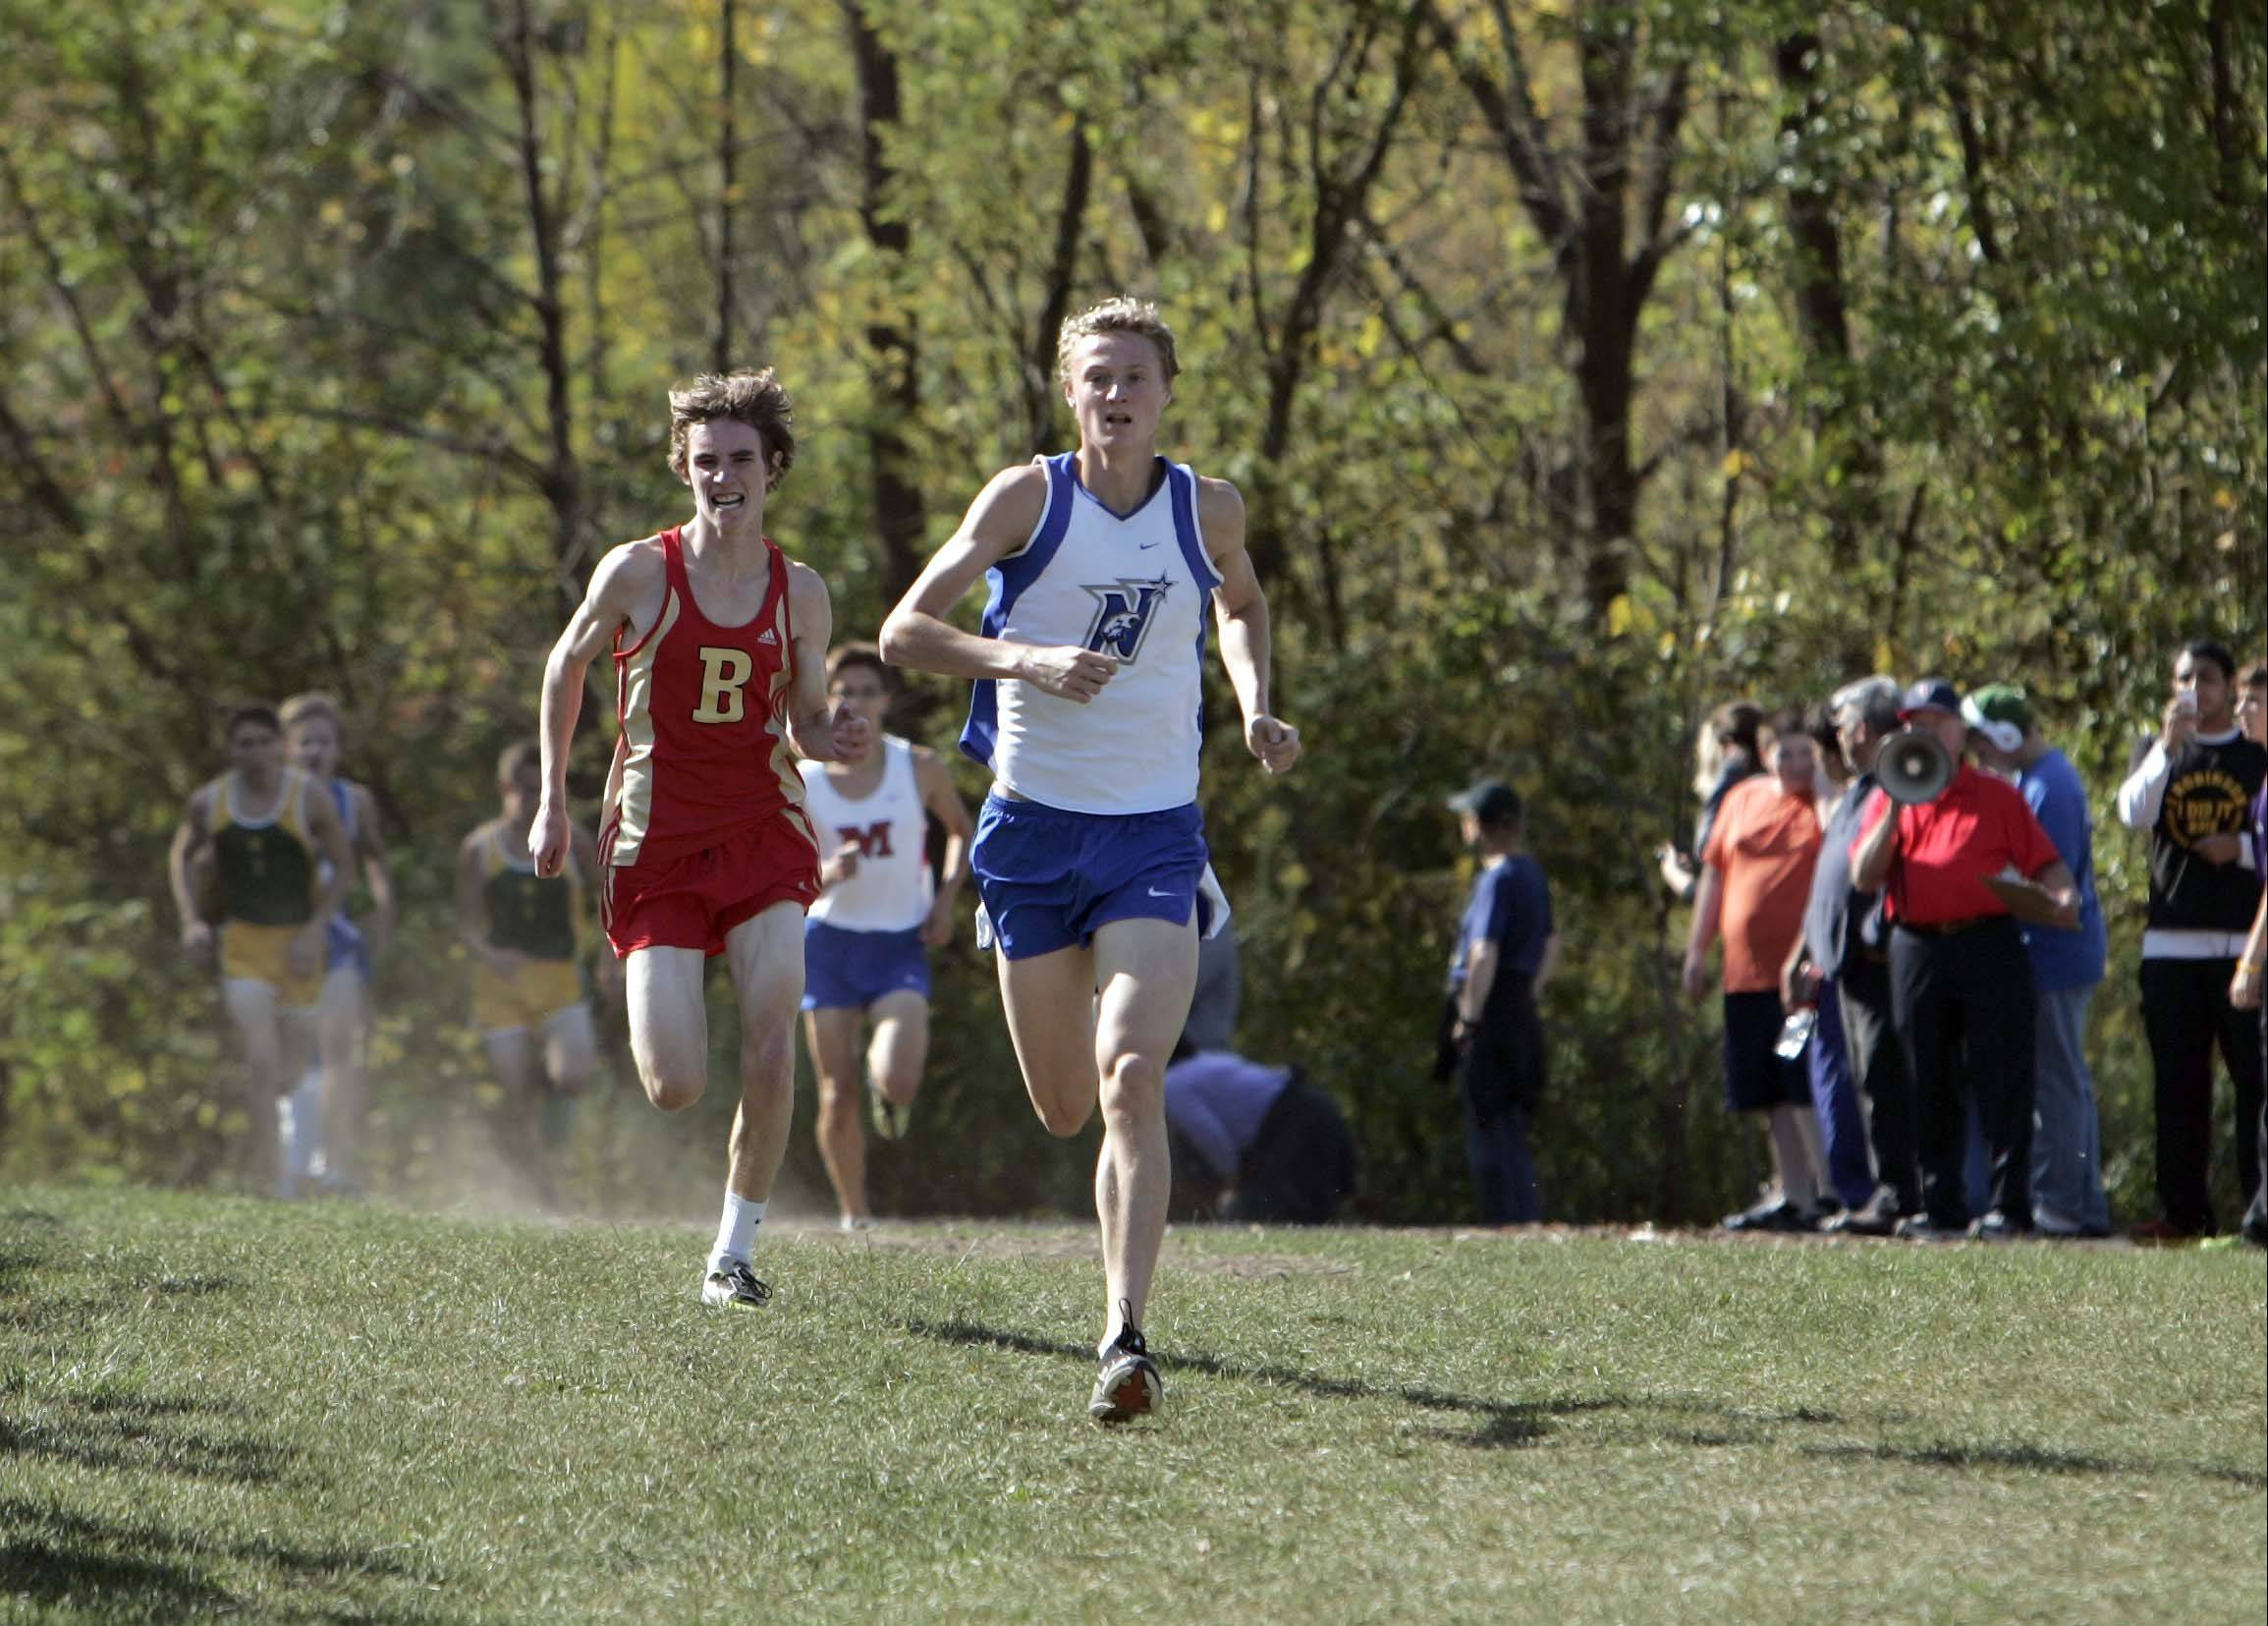 Batavia's Chris Orlow and St. Charles North's Spencer Gray finish fifth and sixth, respectively, at the St. Charles North invitational Saturday at LeRoy Oakes in St. Charles.